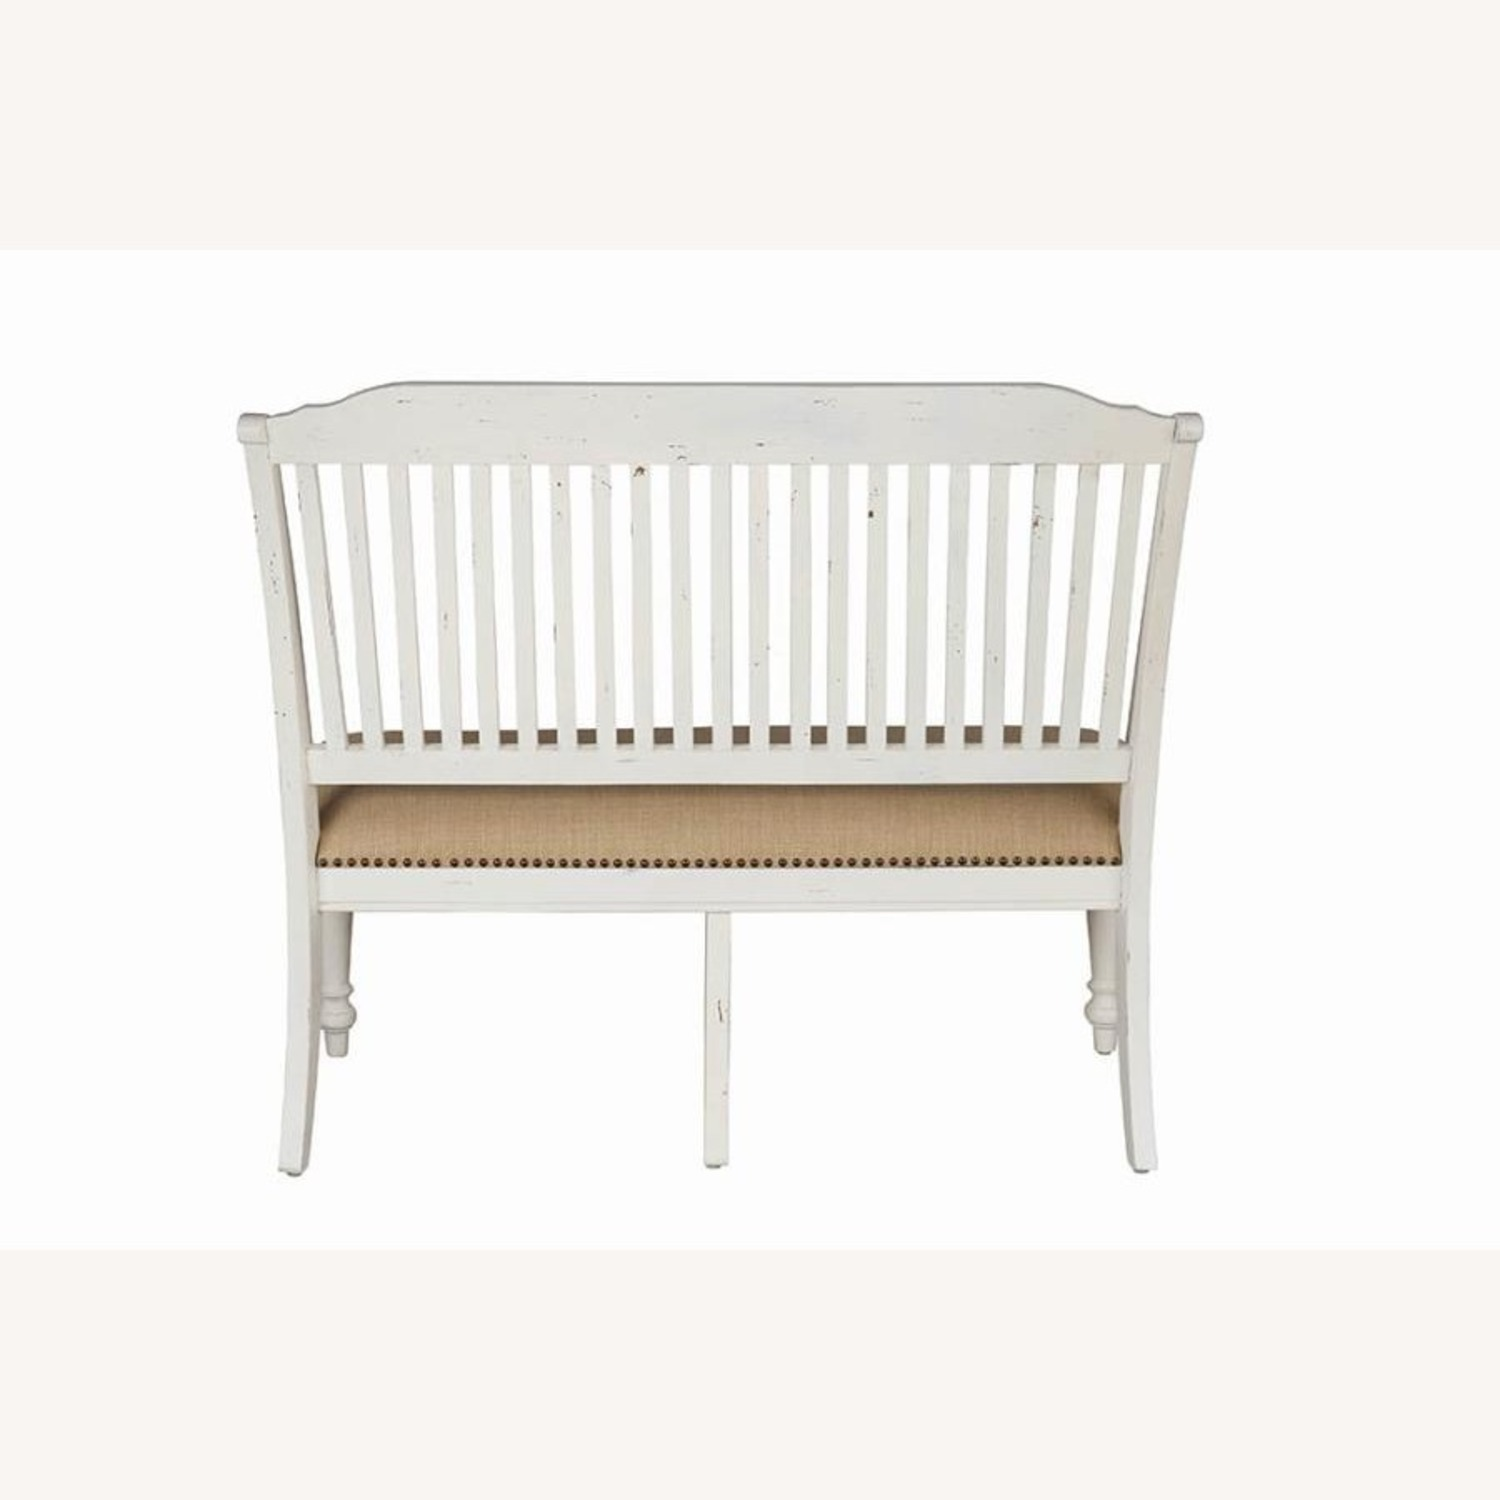 Bench In White Finish W/ Stick-Back Seating - image-2